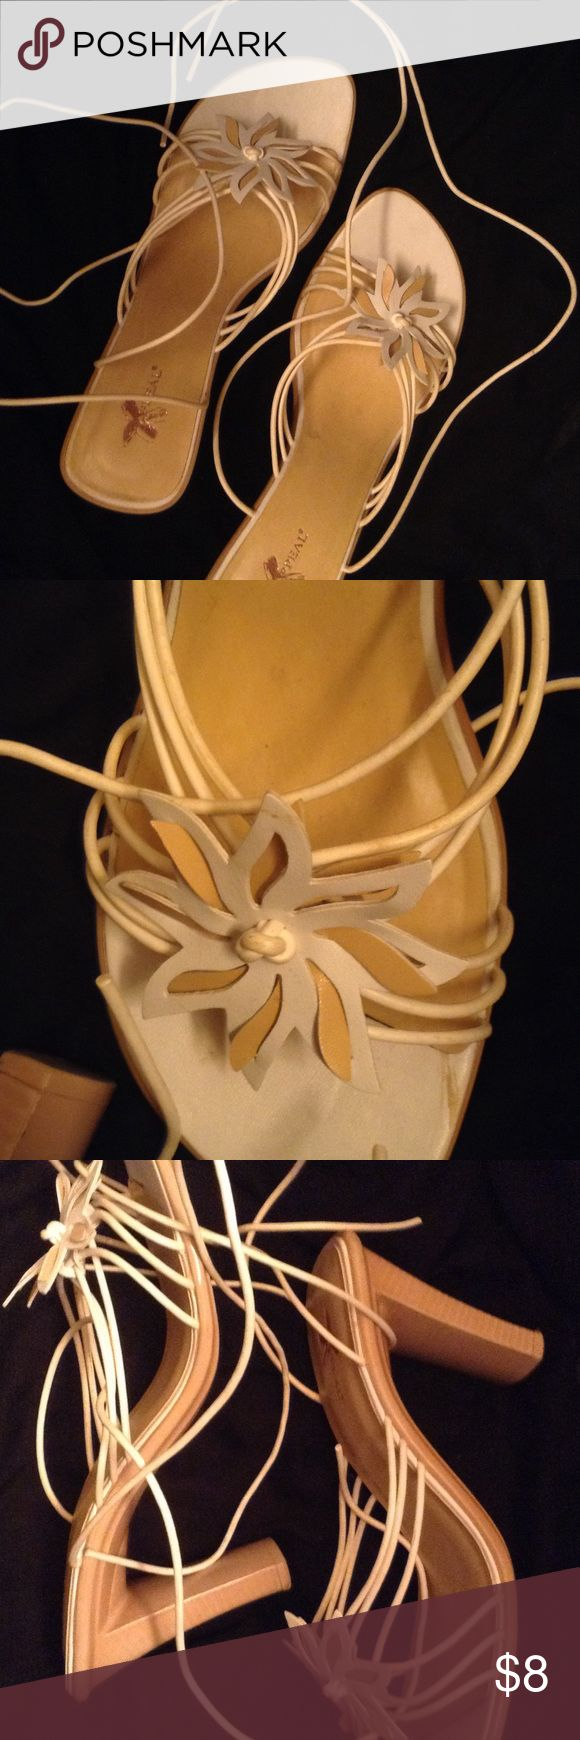 White Open Toe Strap Heels Good condition open toe strap up heels. Heel is 4 inches XAPPEAL Shoes Heels